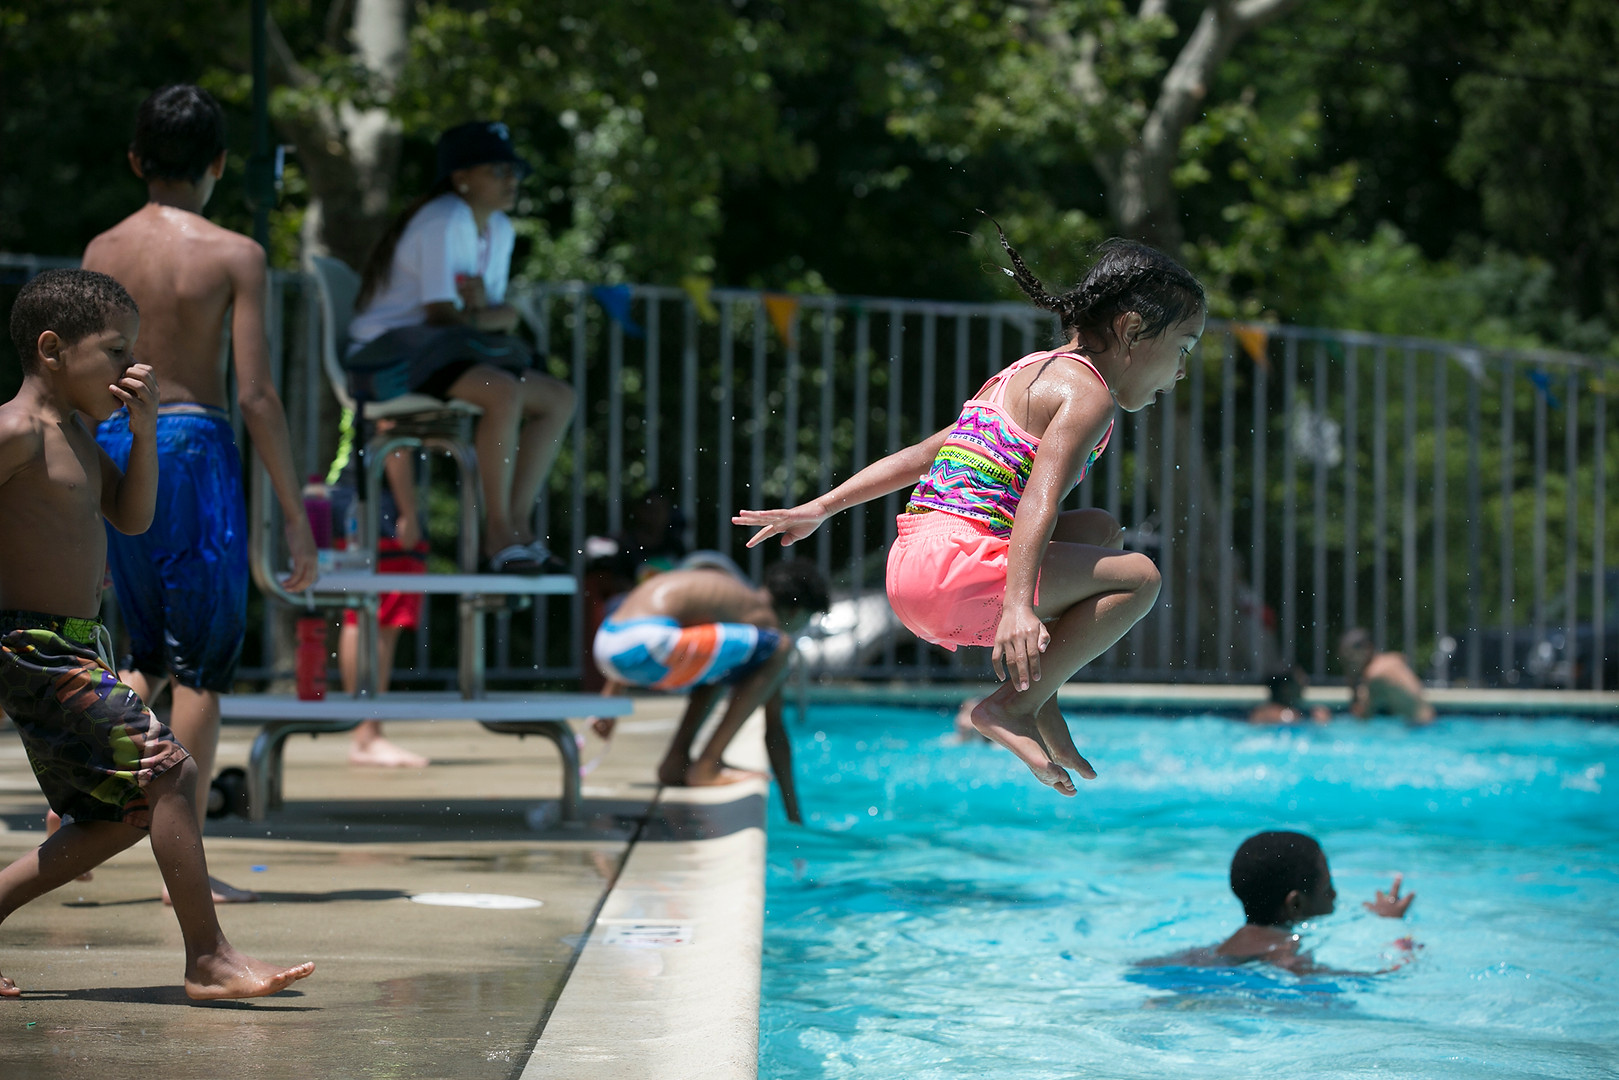 Ariana Reyes, 6, does a cannonball into the Pyne Poynt Park Pool in North Camden to celebrate the opening of city pools for the season on the afternoon of June 29, 2018.  Maggie Loesch / The Philadelphia Inquirer